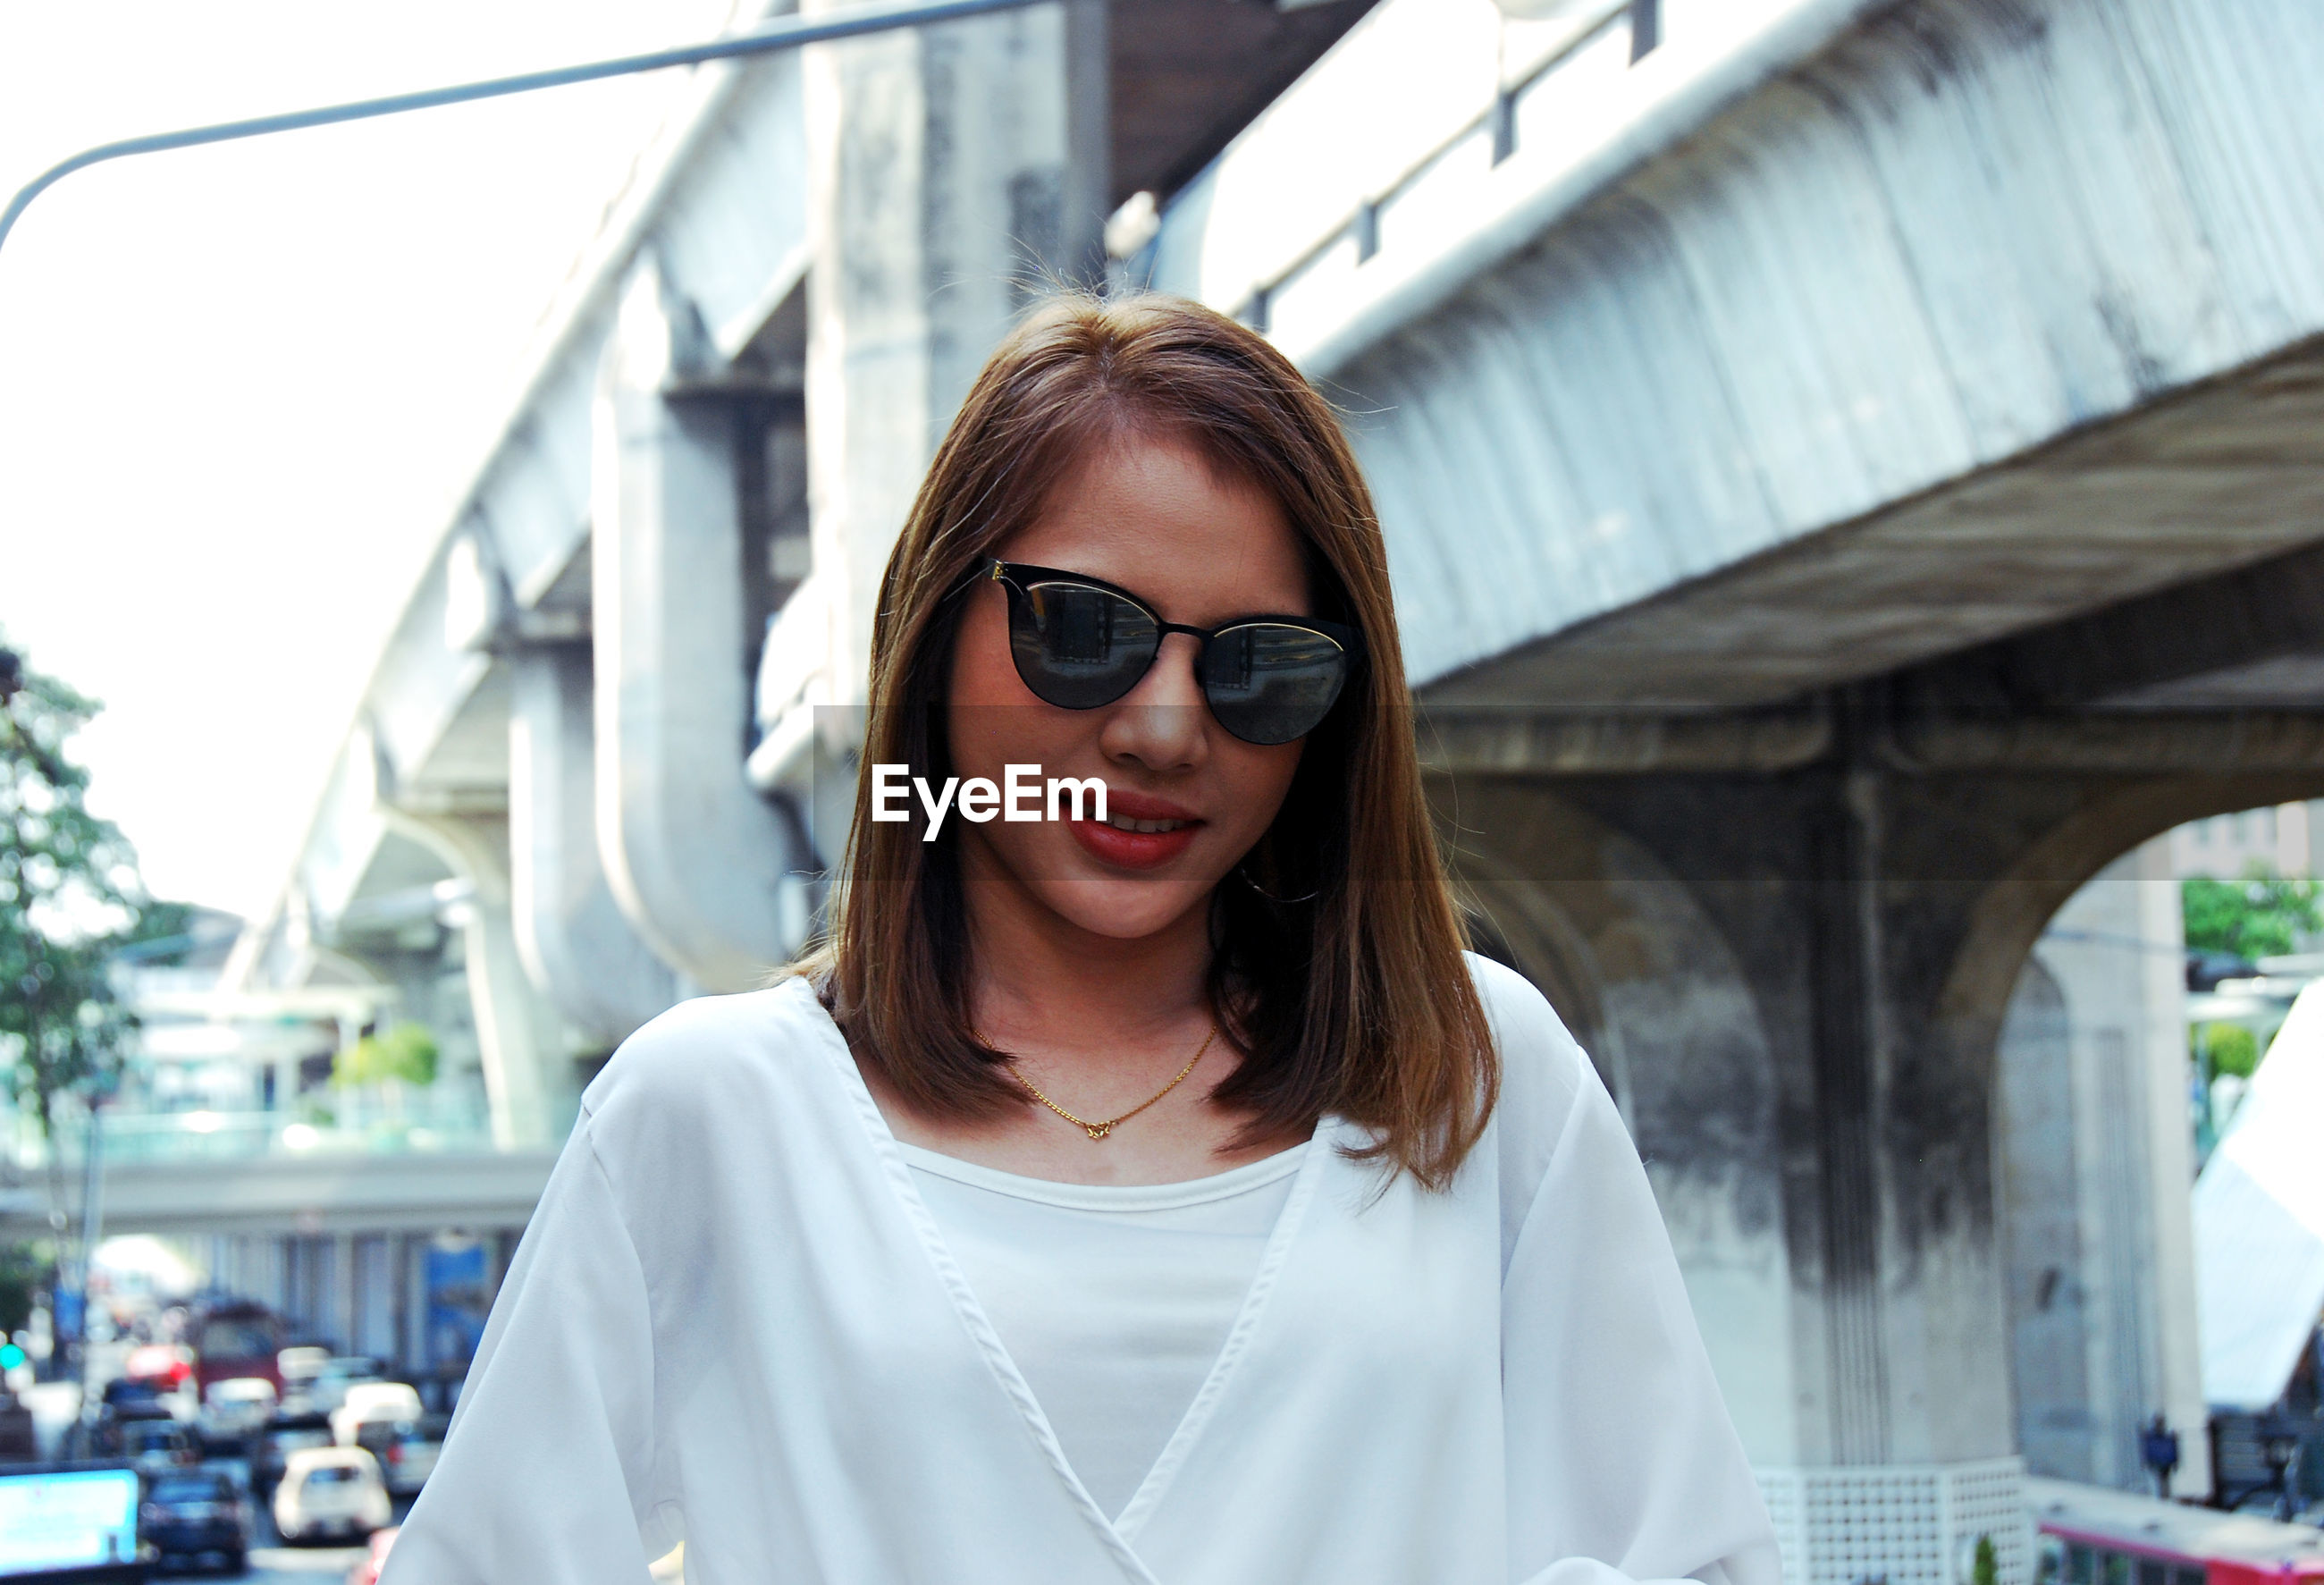 Portrait of young woman in sunglasses standing in city